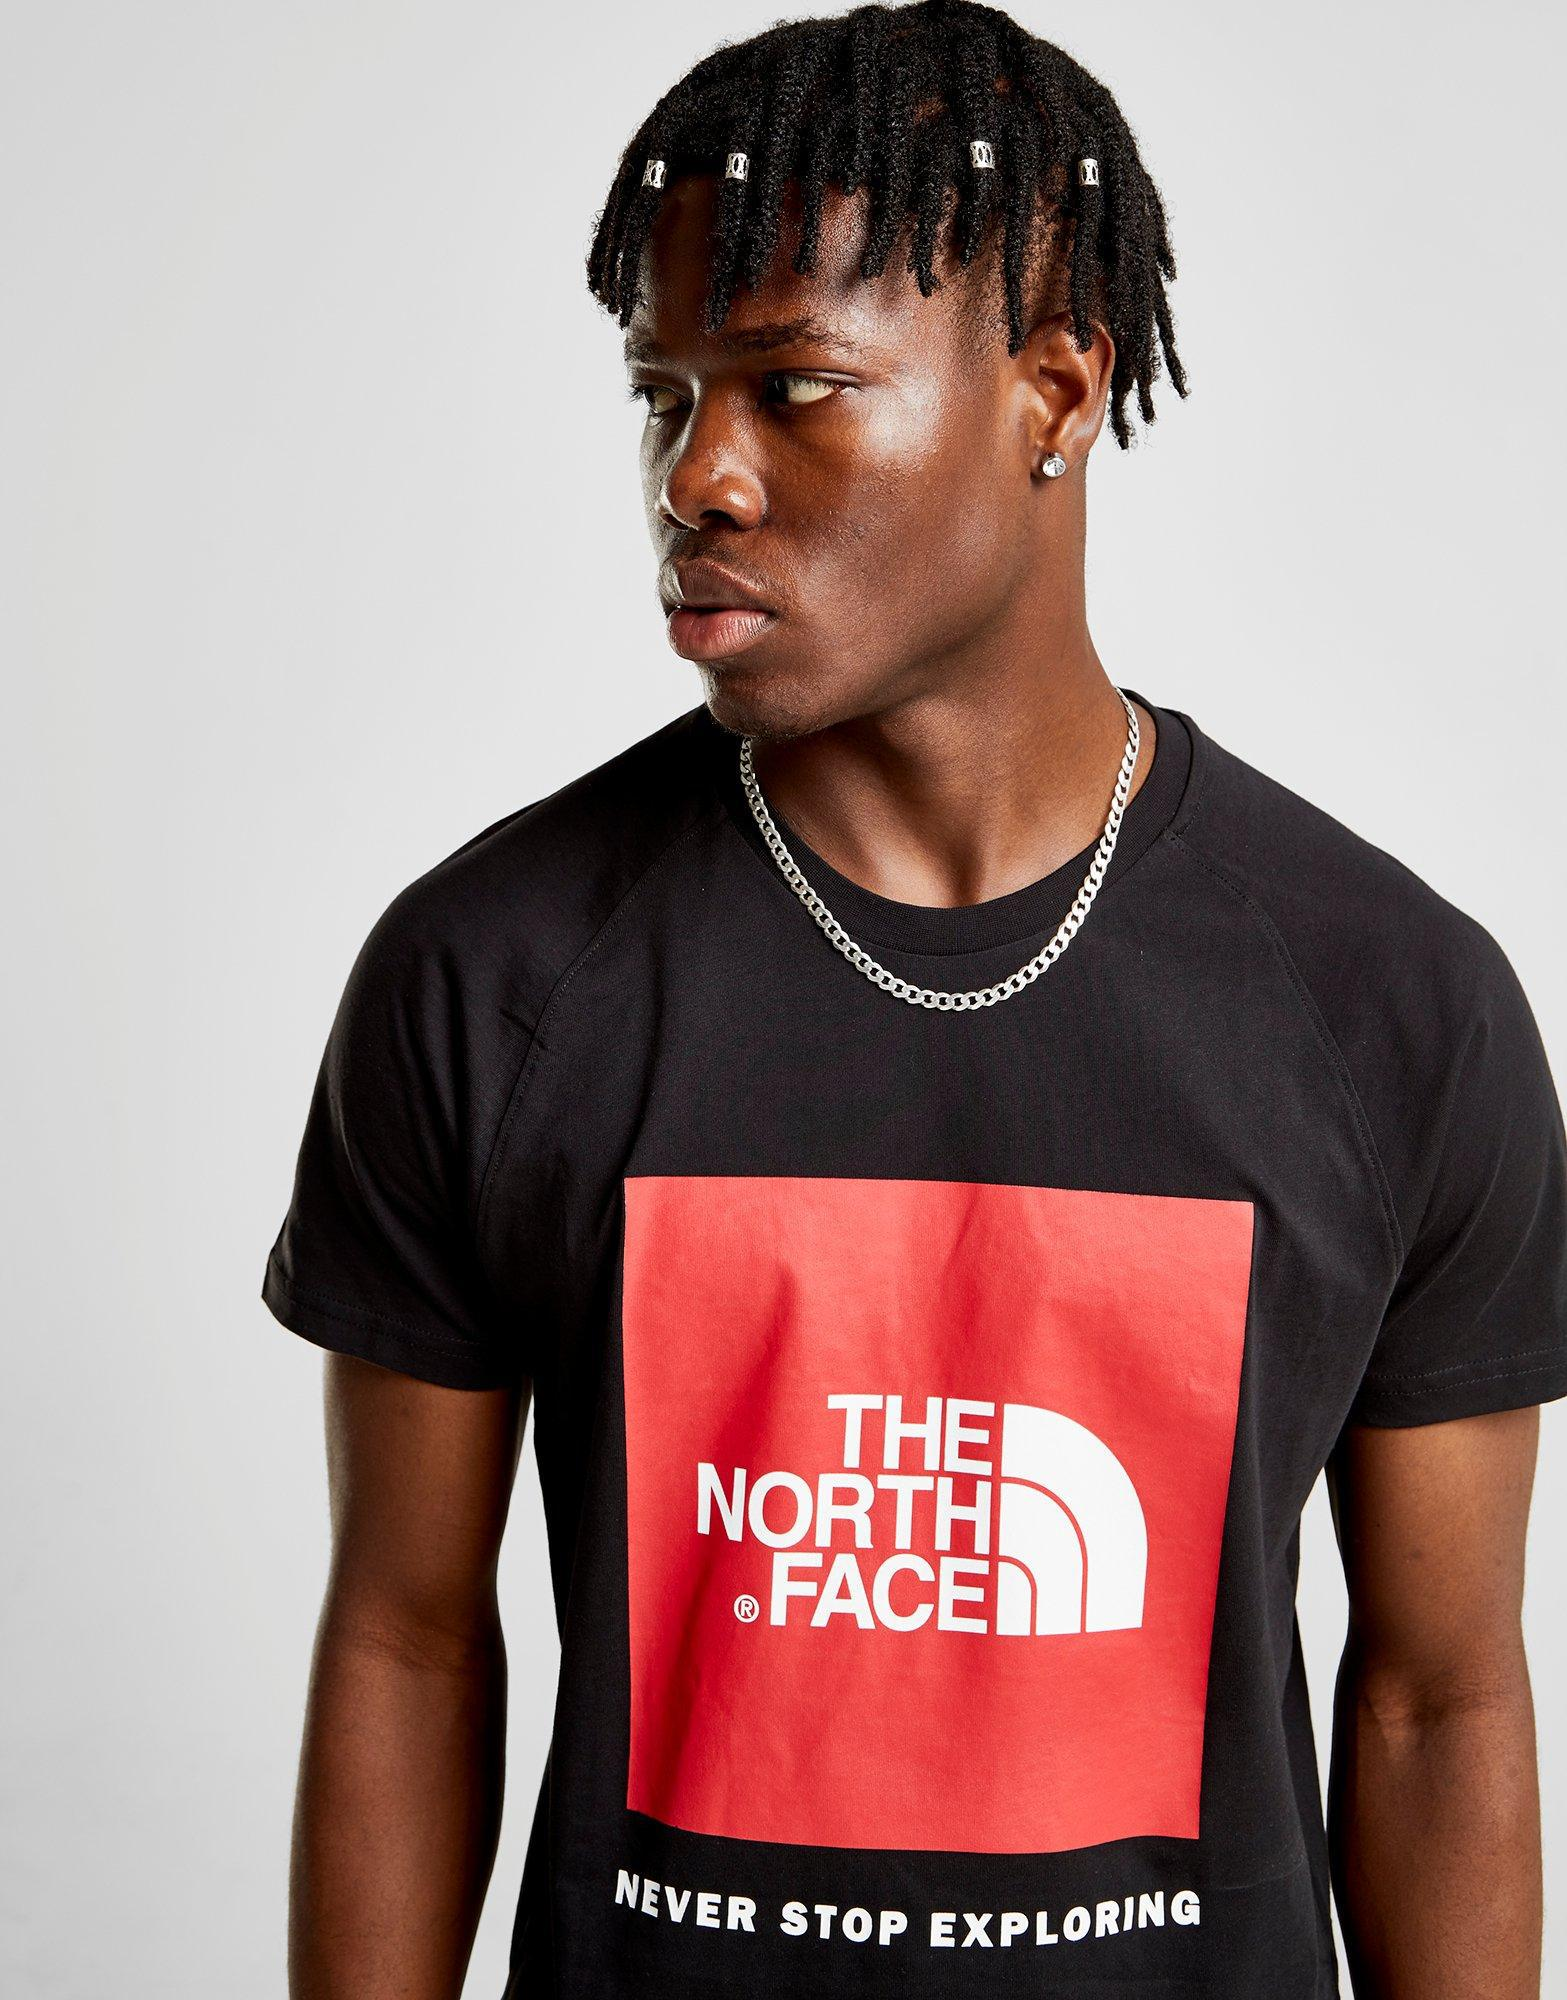 db5965ef30 Lyst - The North Face Raglan Redbox T-shirt in Black for Men